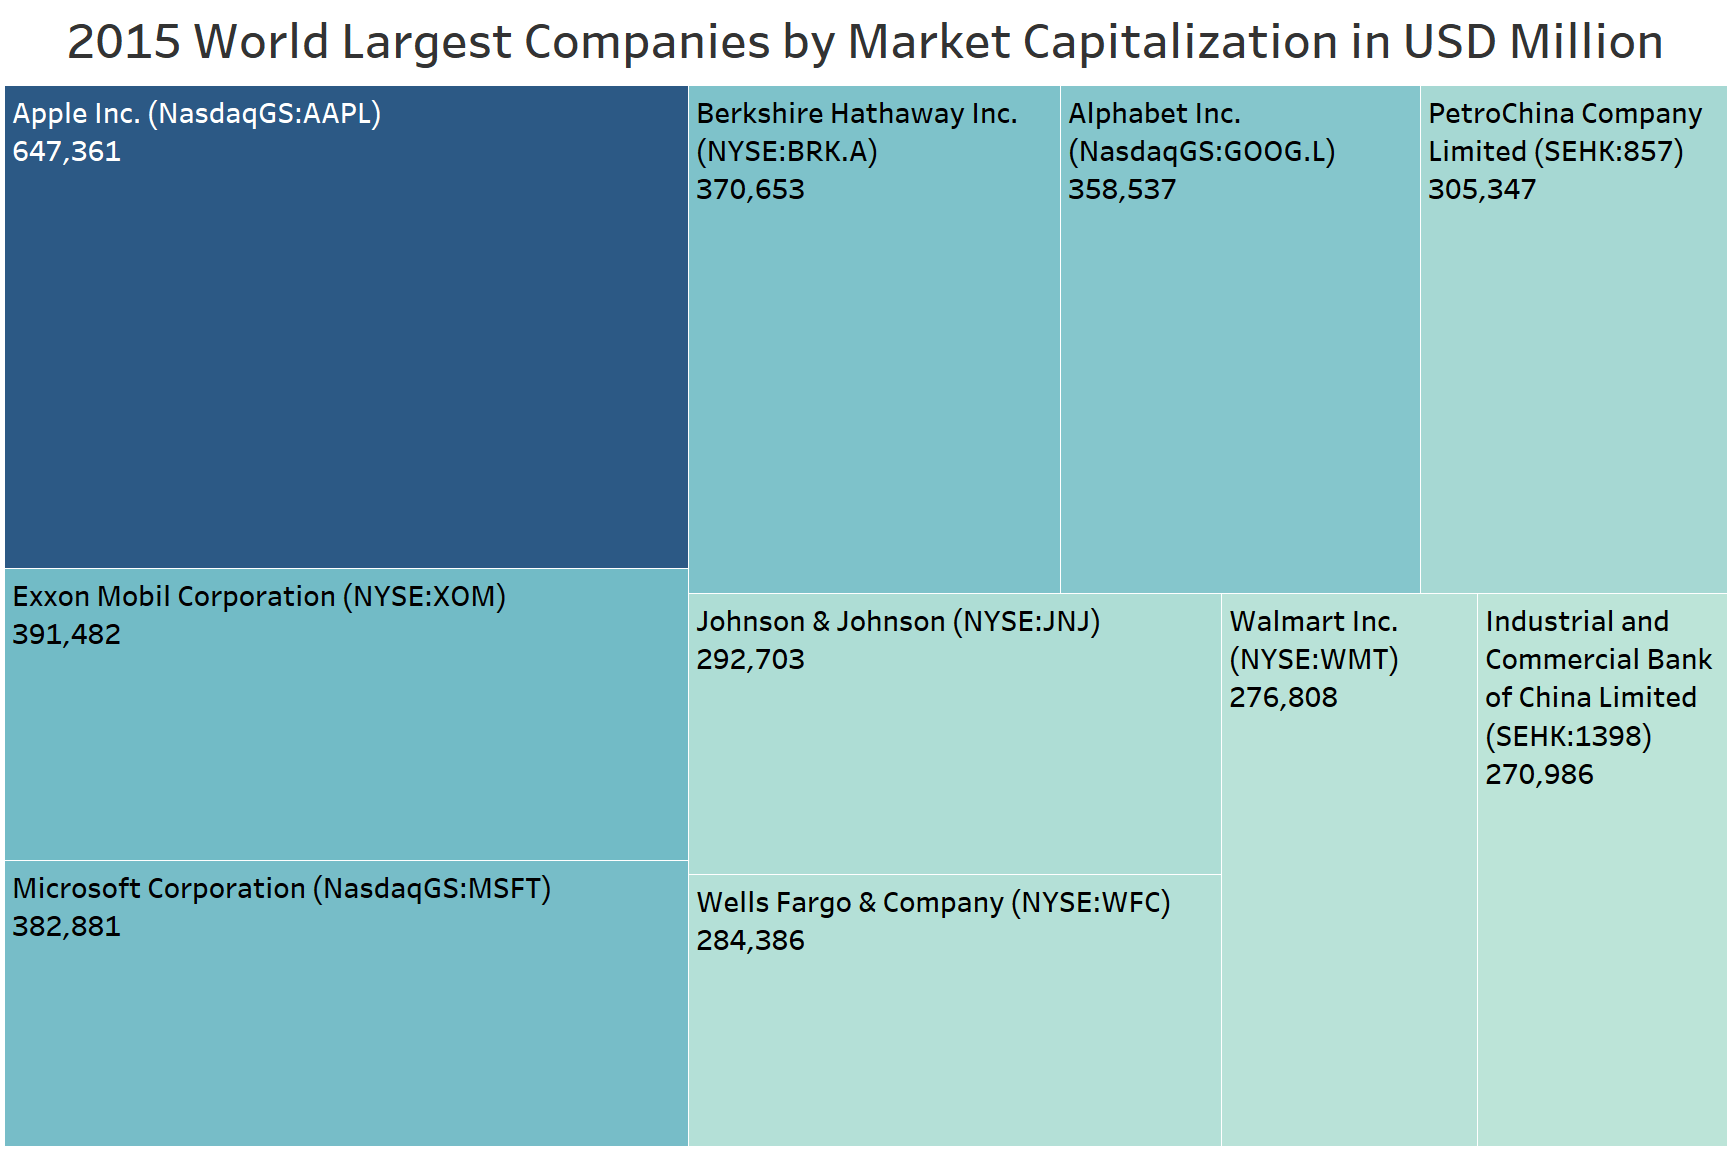 2015 World Largest Companies by market capitalization